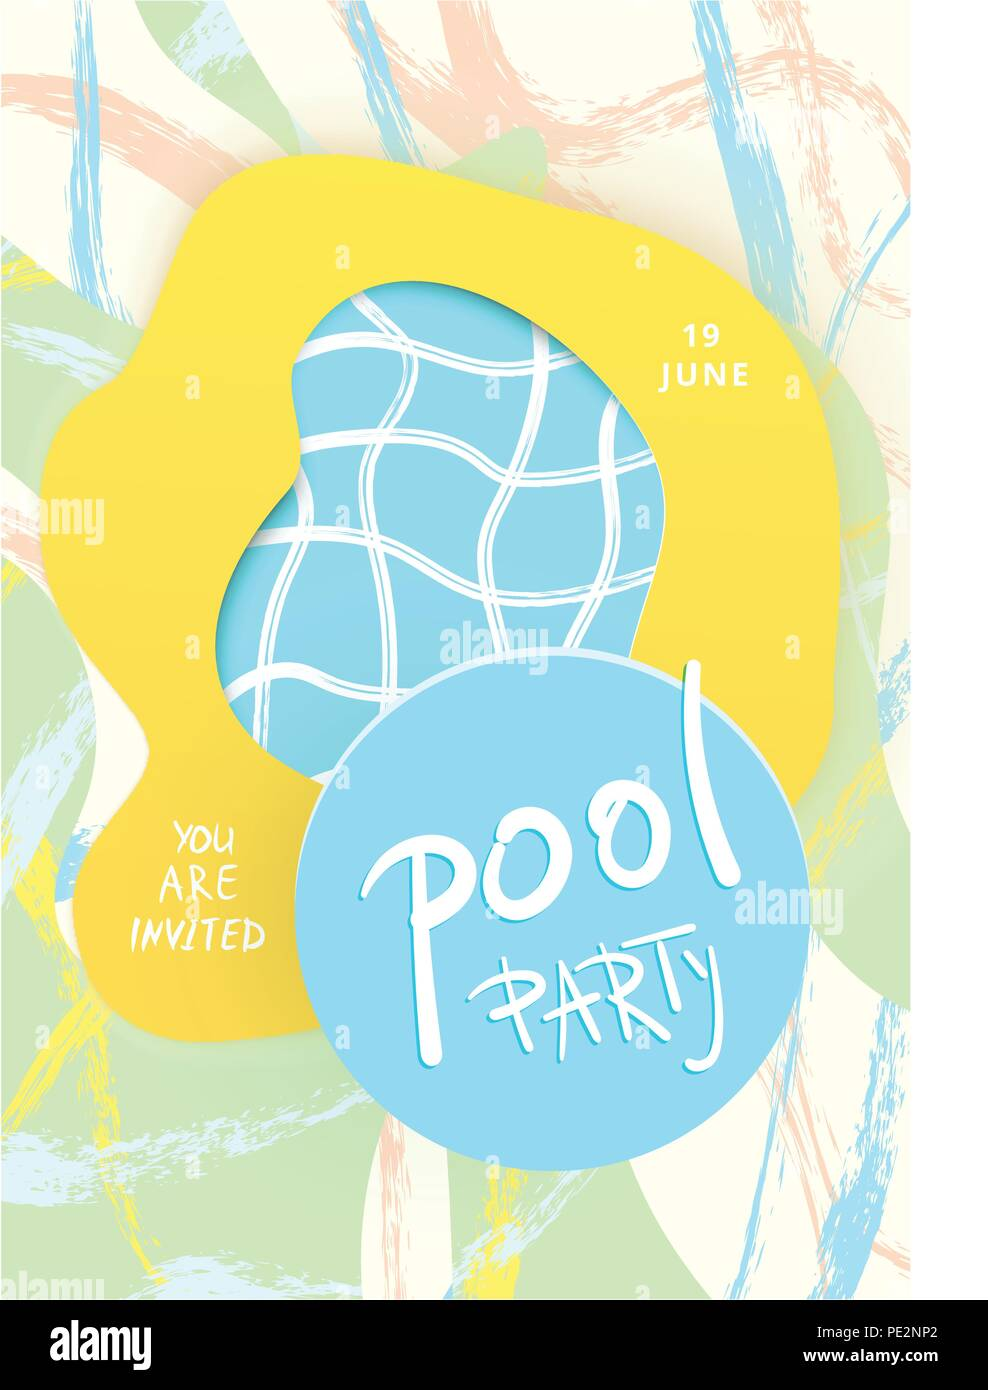 pool party flyer with abstract background paper cut effect banner